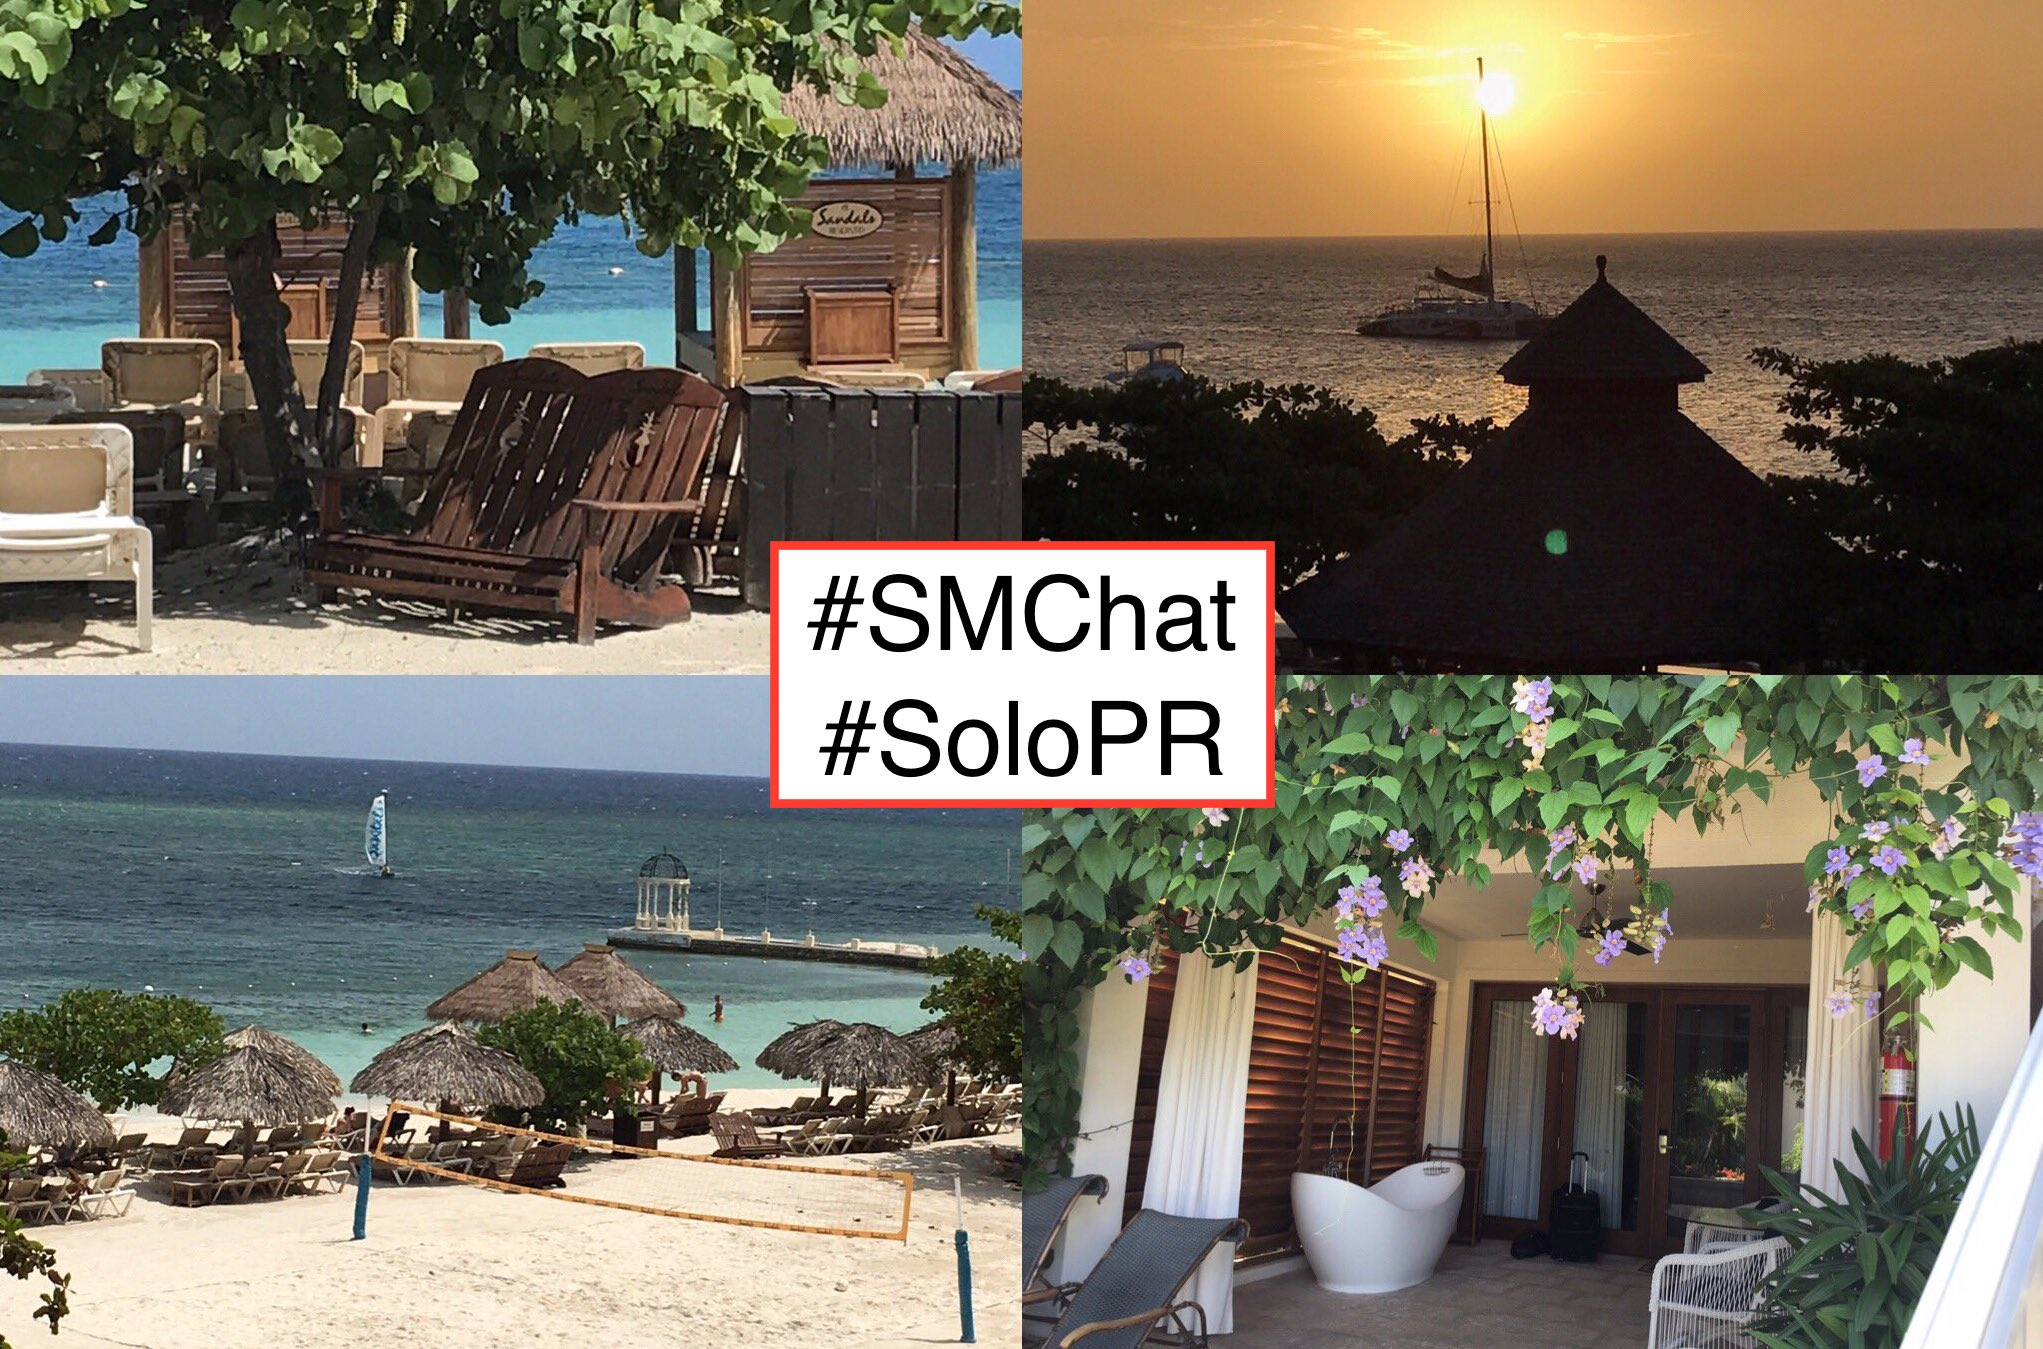 #smchat #solopr Q2 Does 'taking a #vacation' mean the same thing when you're a #solopreneur? https://t.co/5Ehu2b3HaX